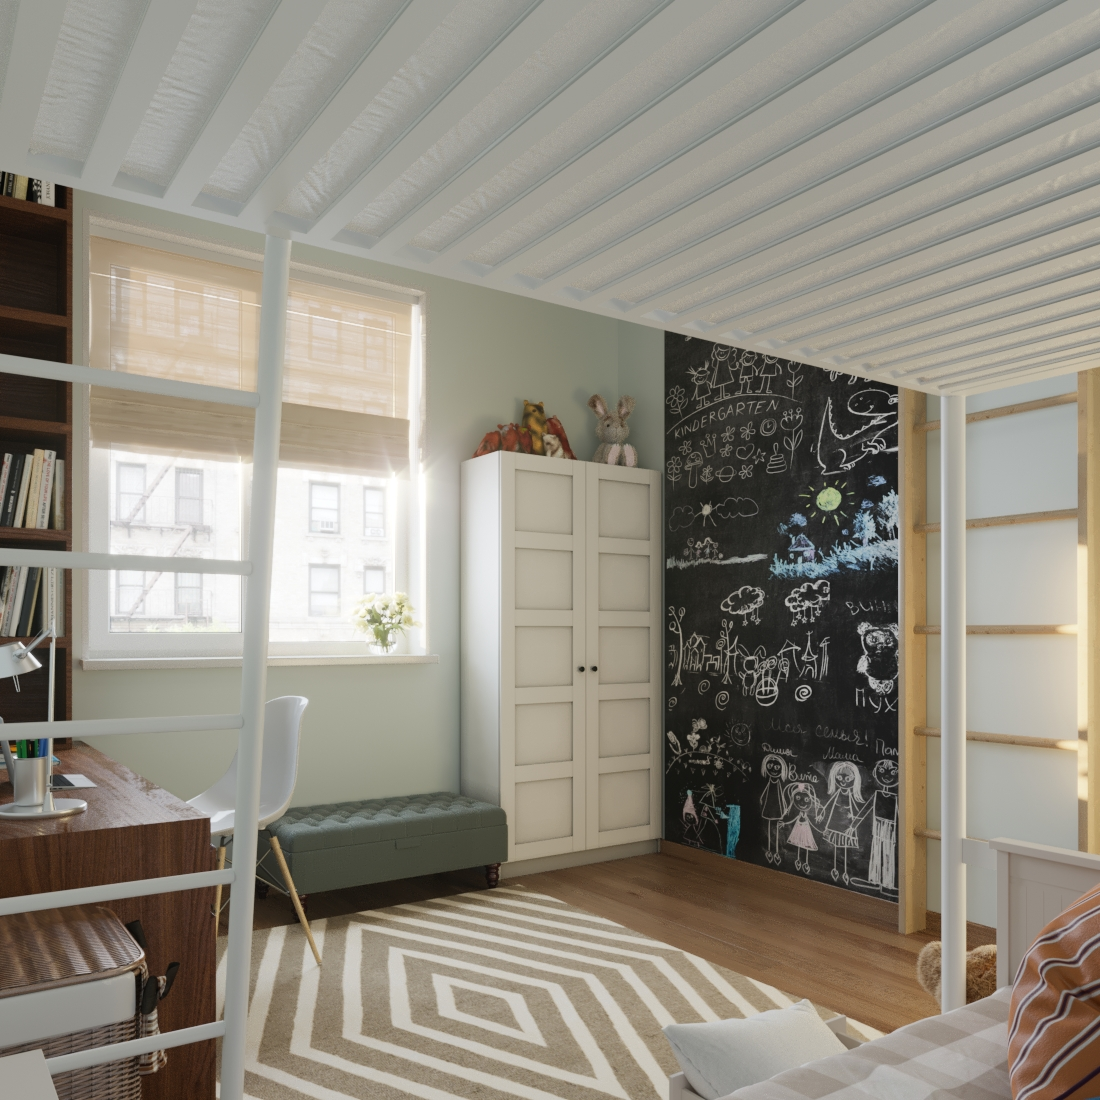 Kids room interior design Marbella